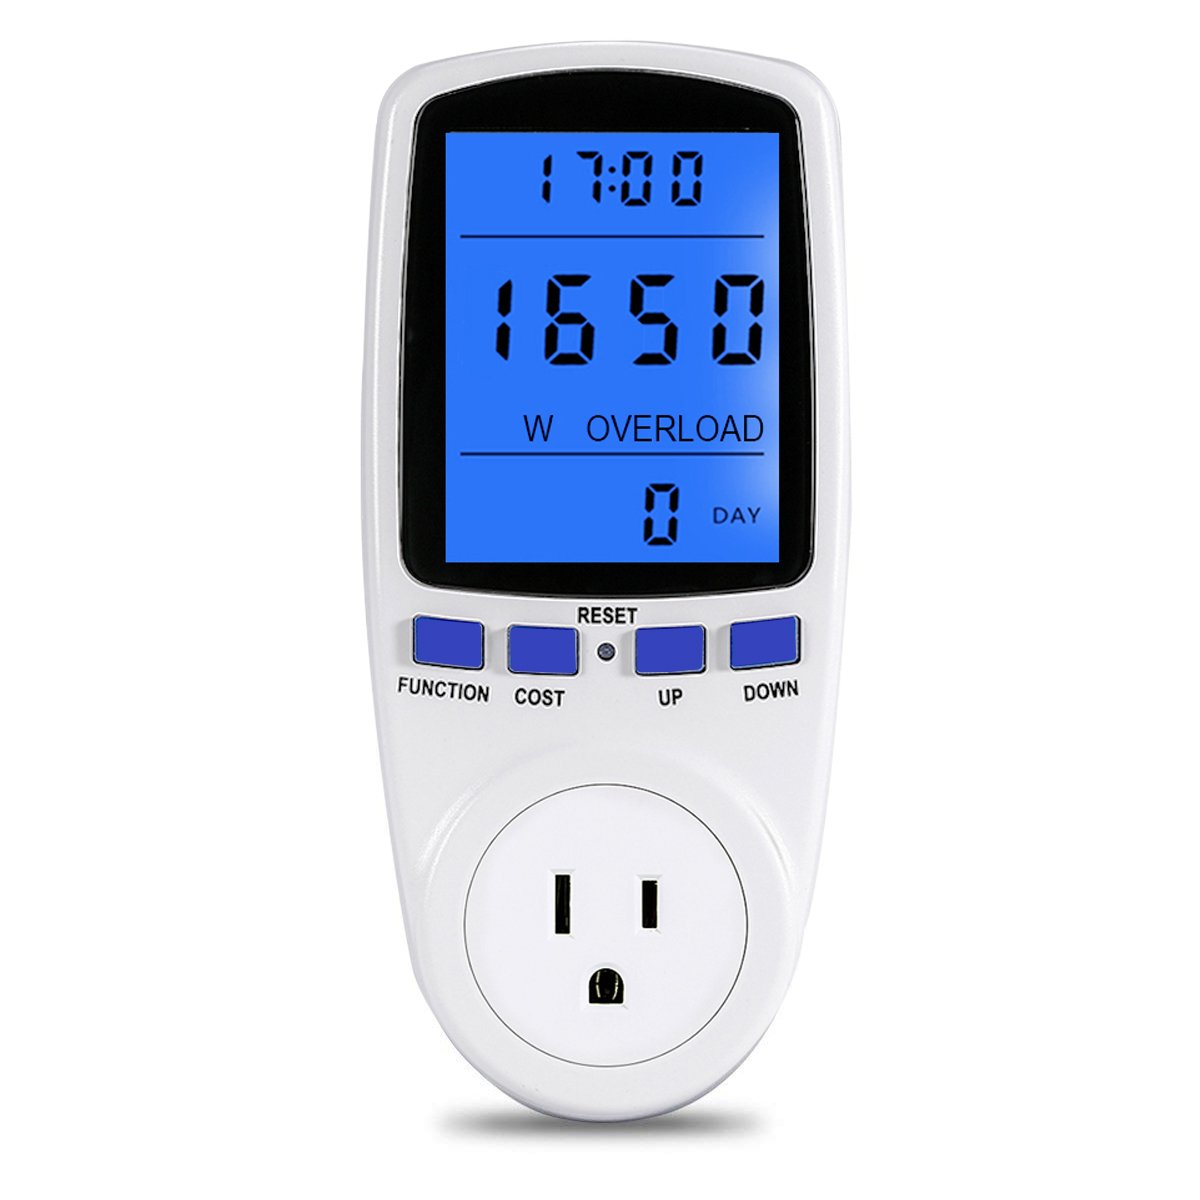 Electricity Usage Monitor Power Meter Plug Home Energy Watt Volt Amps Wattage KWH Consumption Analyzer with Digital LCD Display Overload Protection